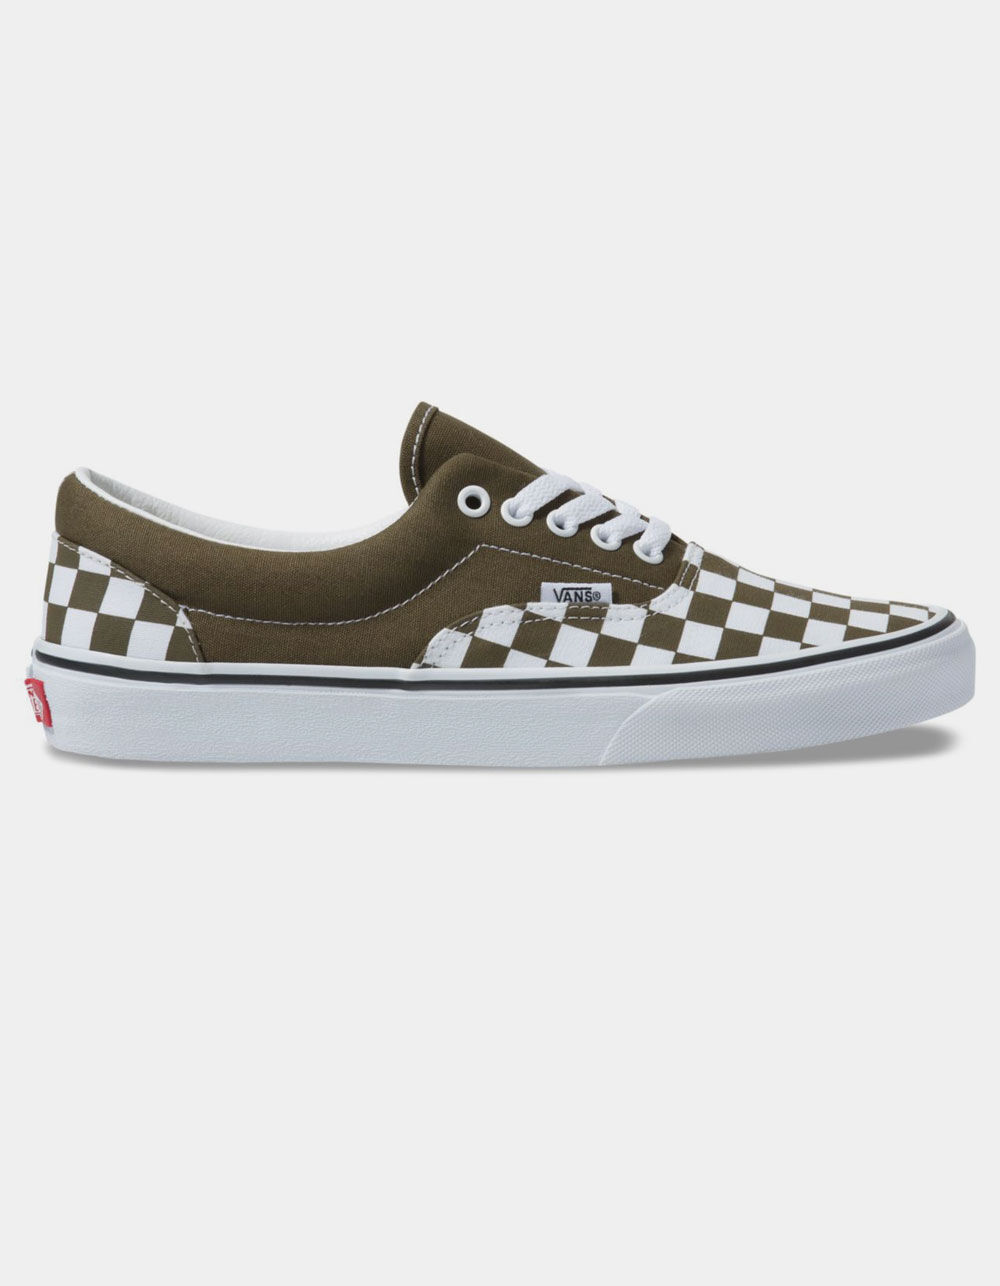 VANS Checkerboard Era Beech & True White Shoes